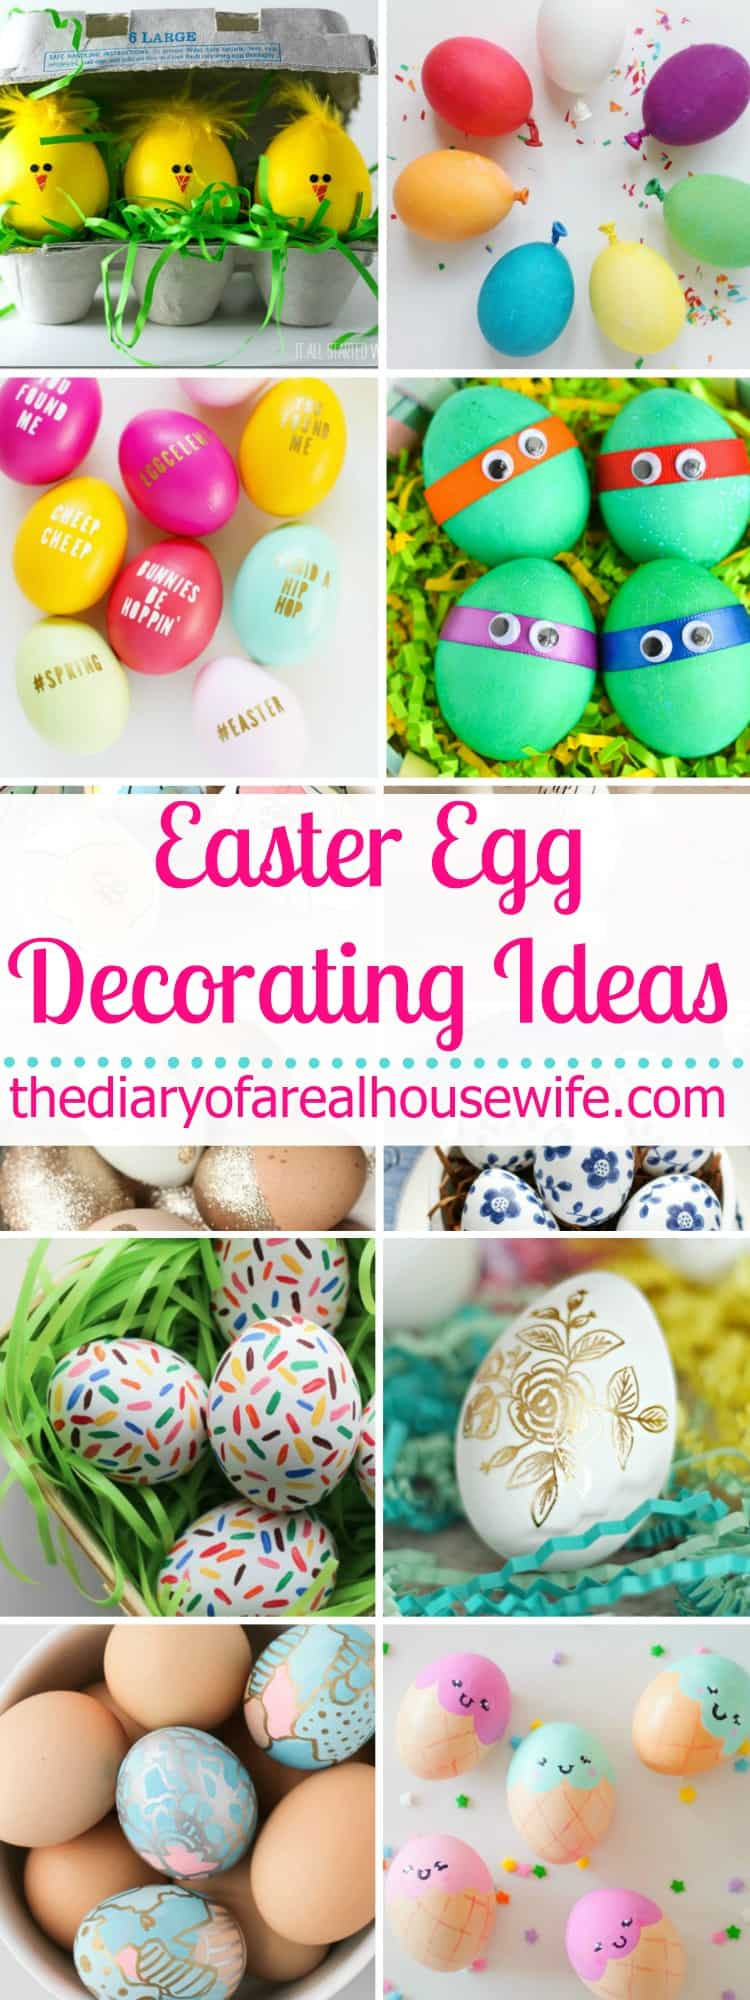 Easter egg decorating ideas the diary of a real housewife for Easter egg ideas